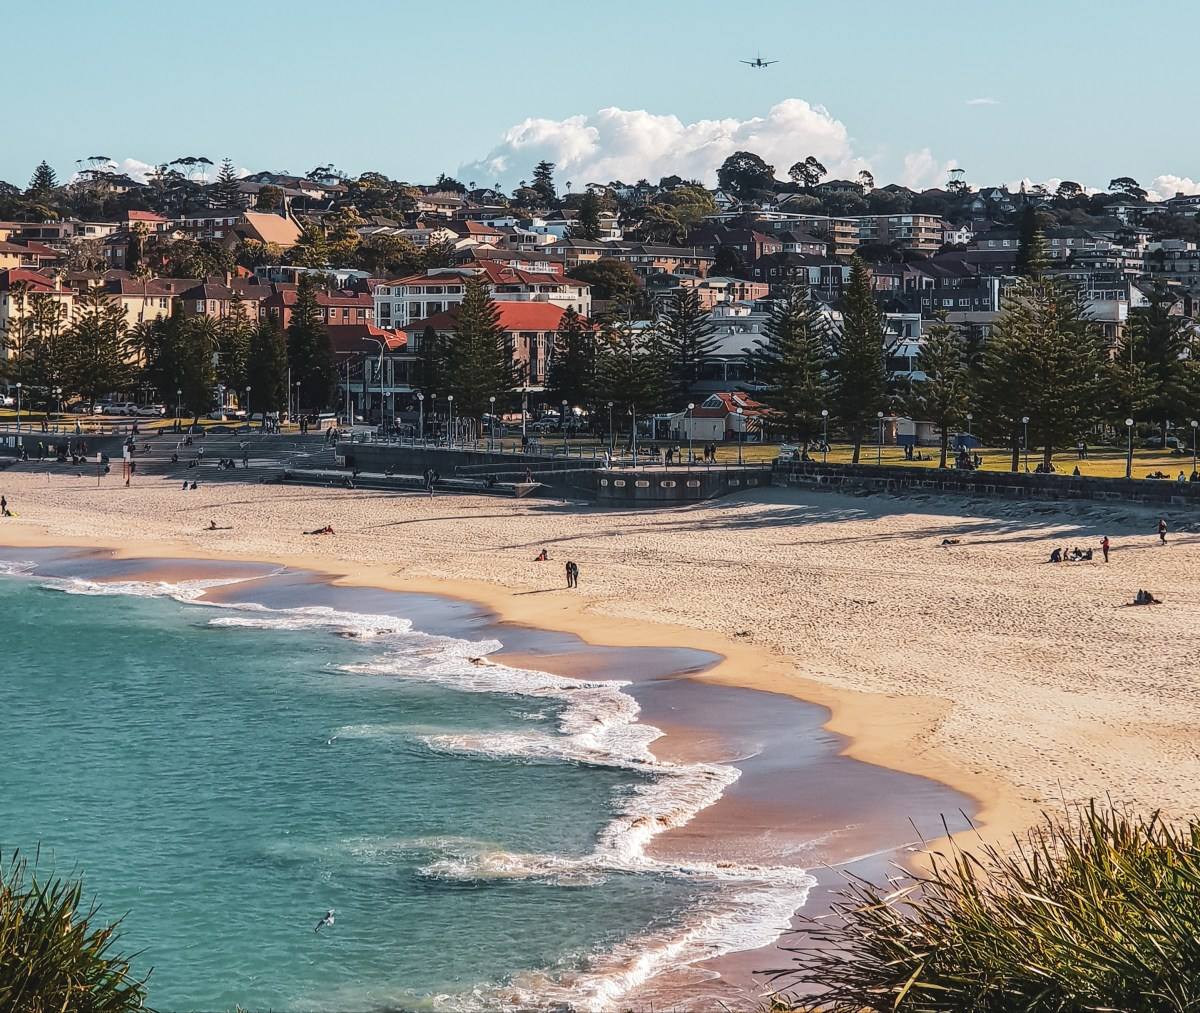 The 9 best beaches in Sydney, Australia